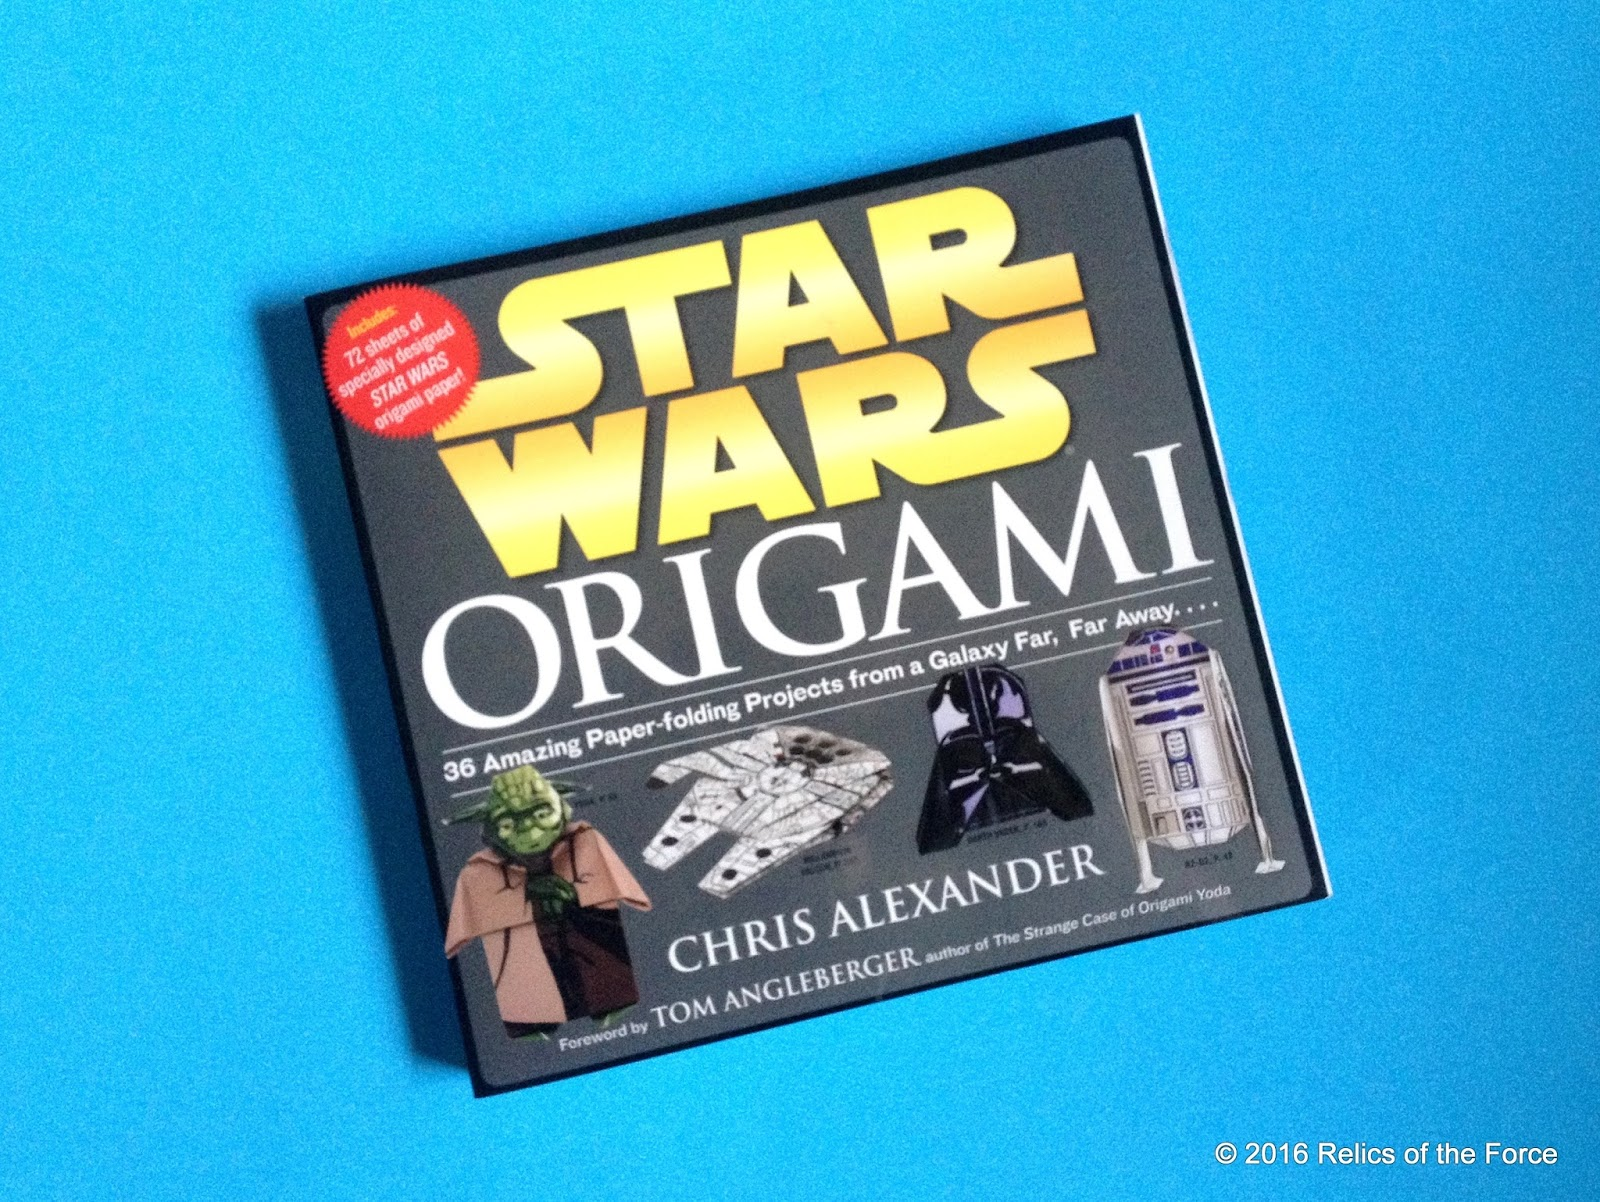 relics of the force star wars origami by chris alexander